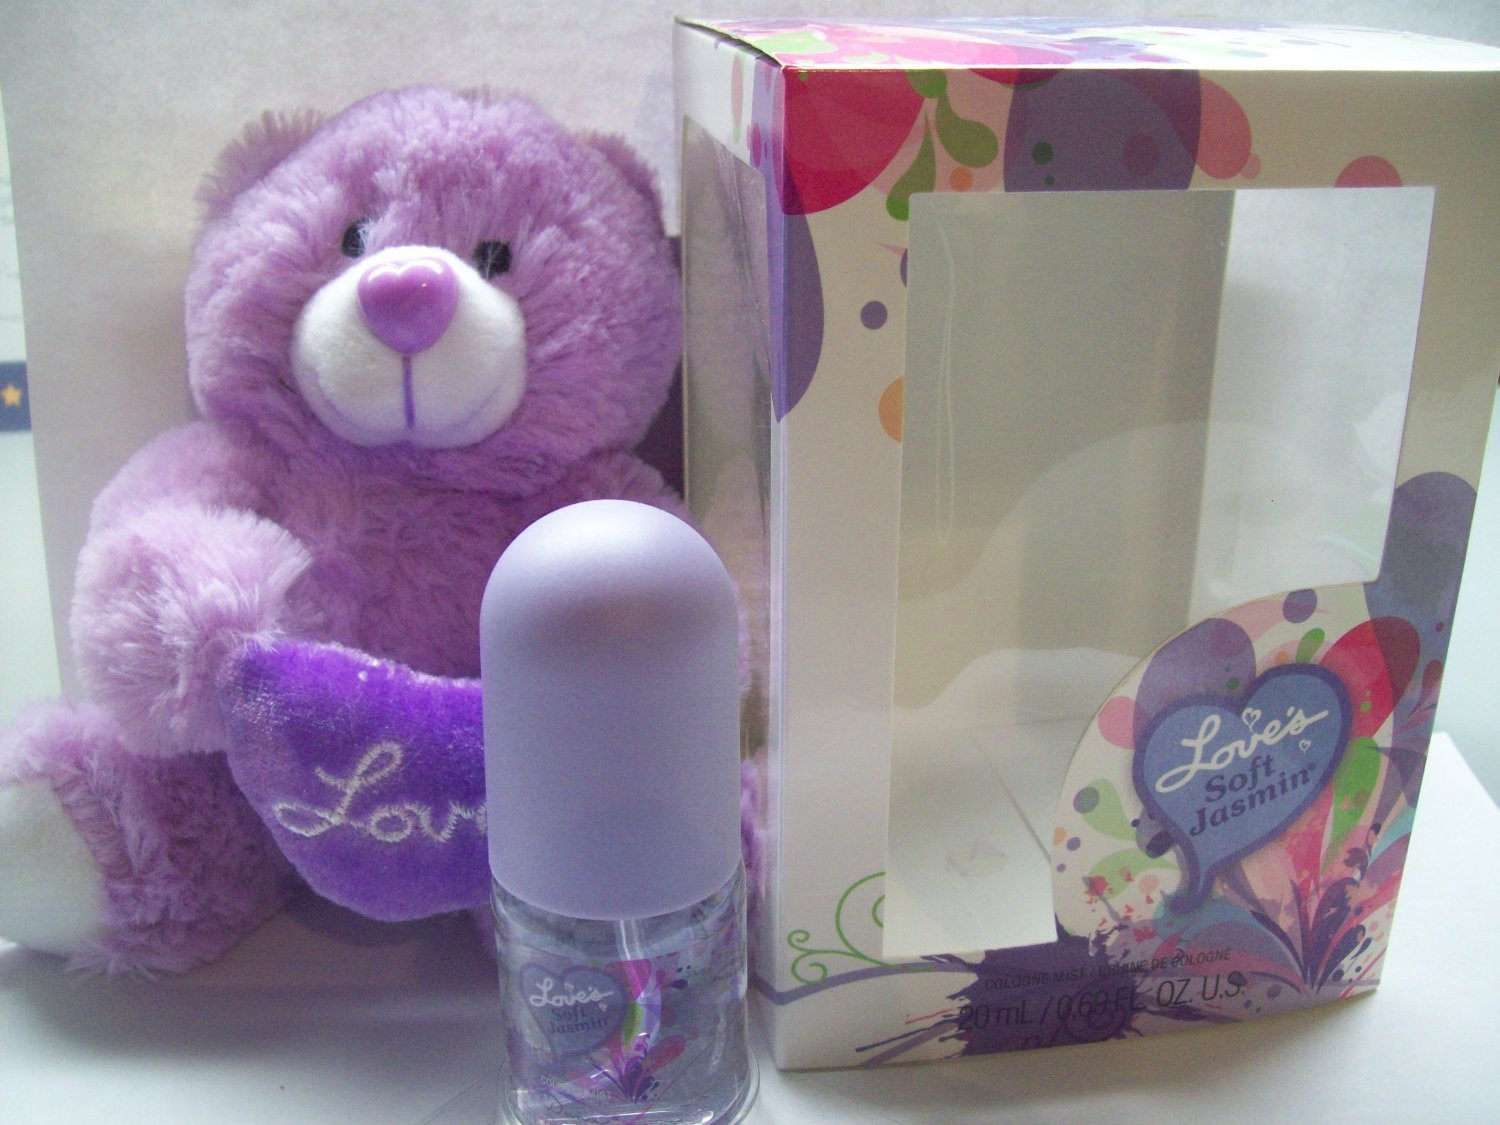 Loves Baby Soft Perfume Gift Sets  Amazon Dana Love s Baby Soft Gift Set with Teddy